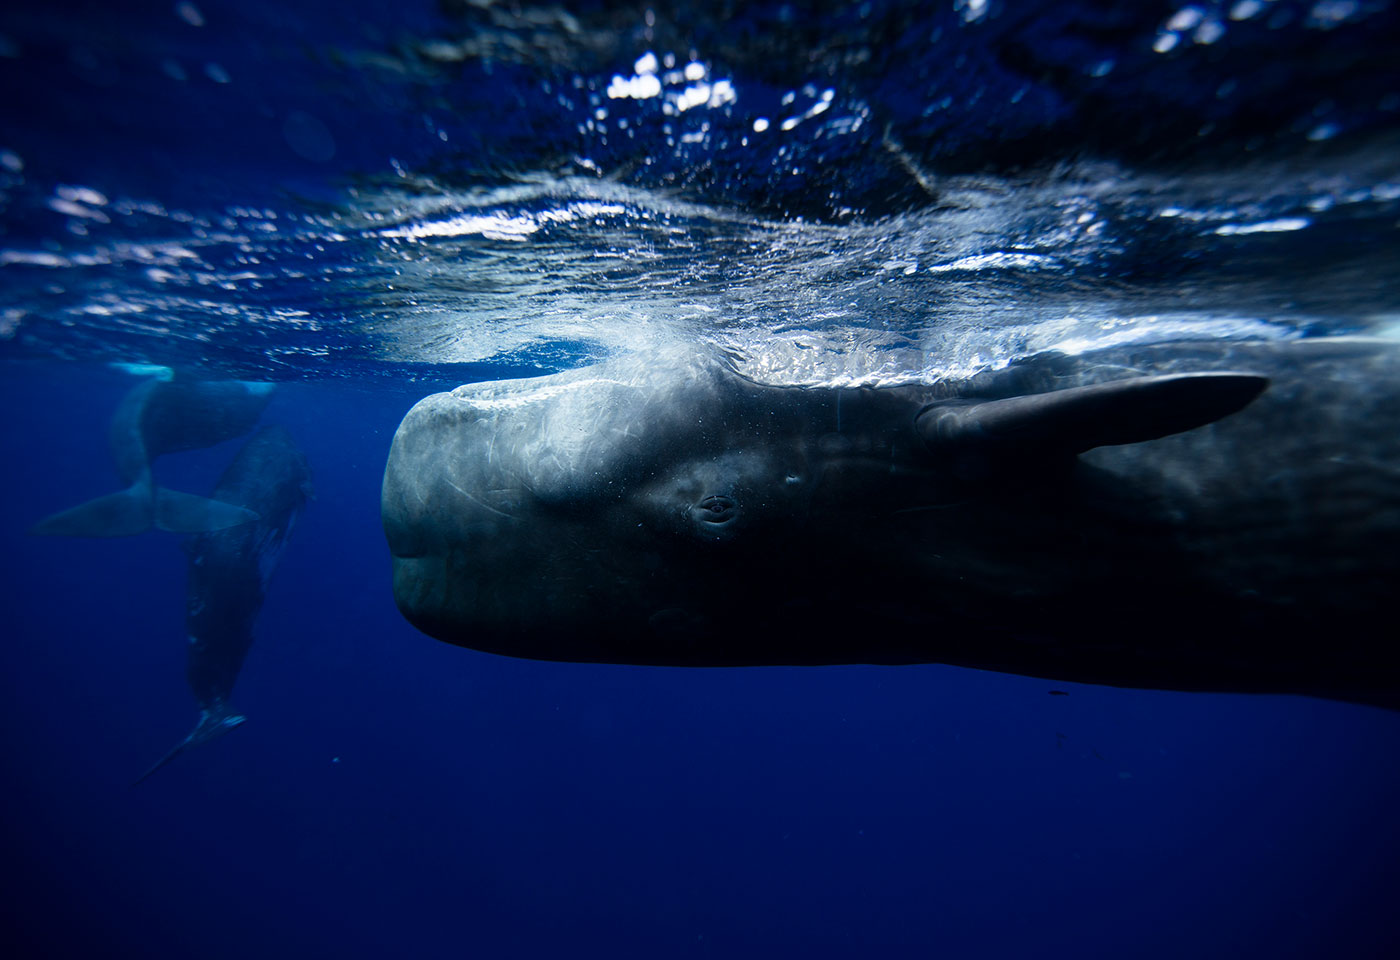 Underwater Photography by Krystle Wright